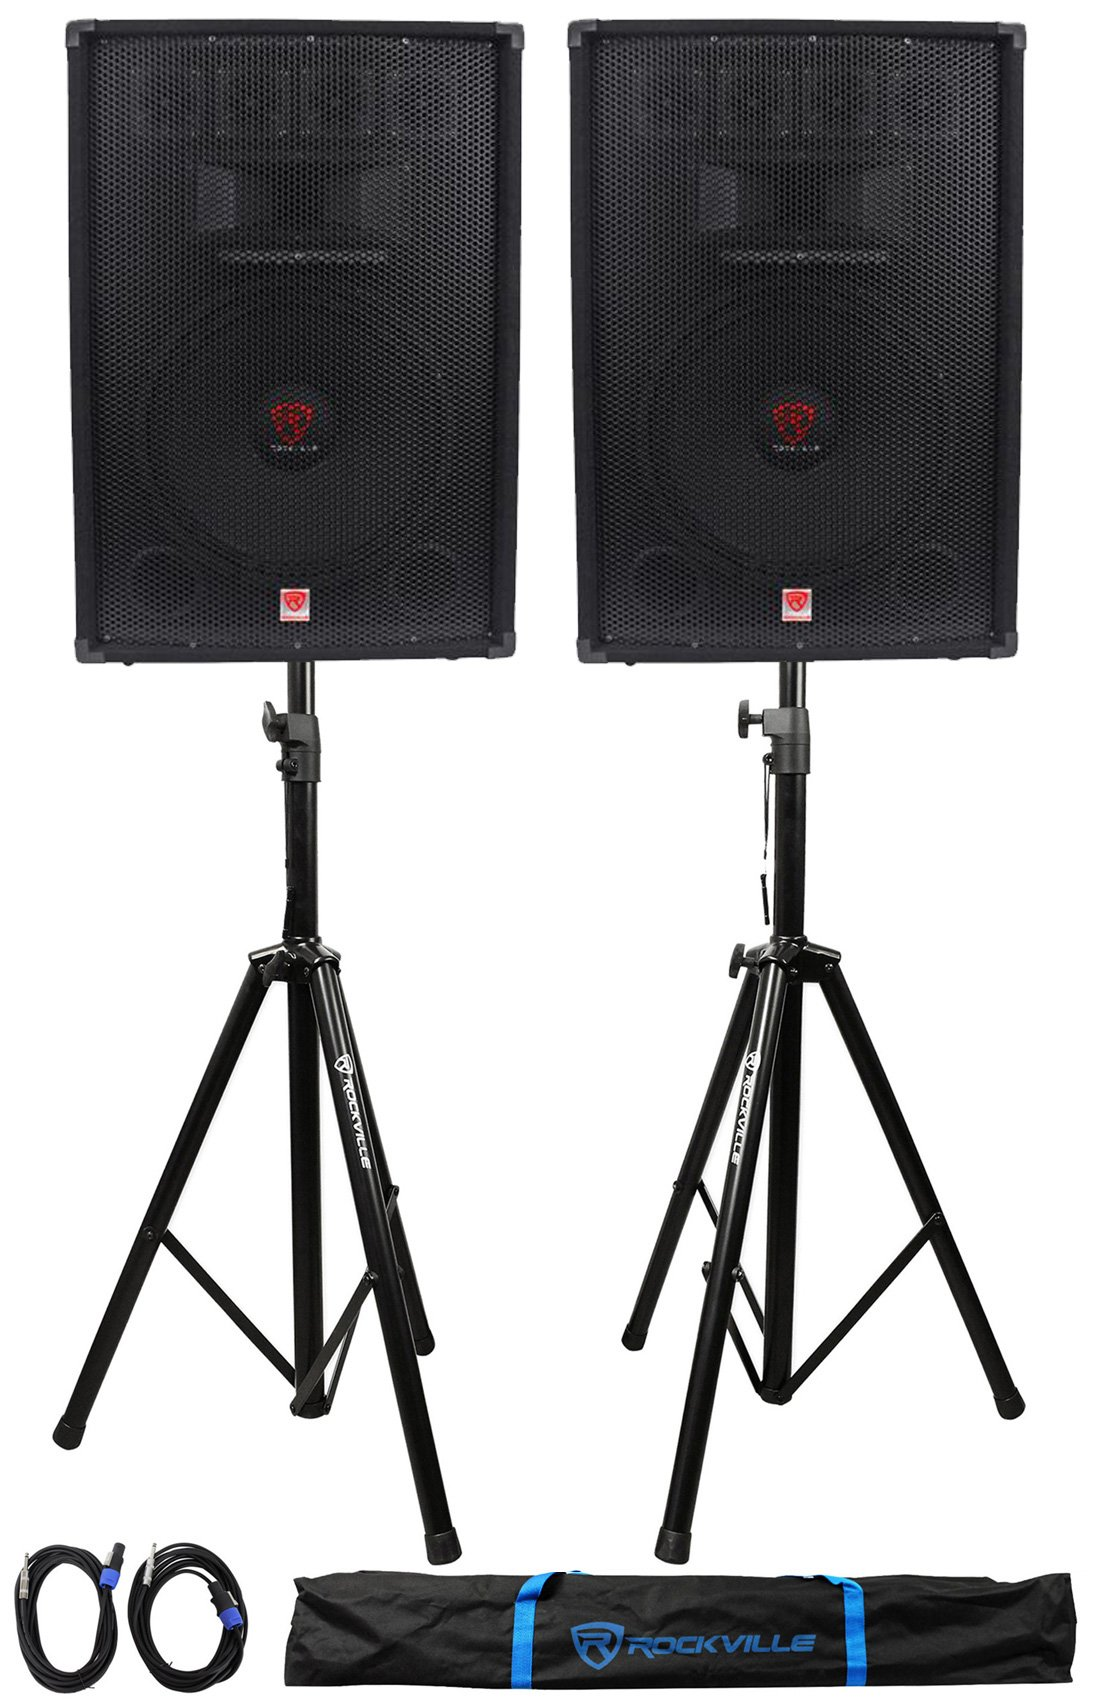 (2) Rockville RSG15.4 15 1500w Passive PA Speakers+2) Stands+2) Cables+Carry Case by Rockville